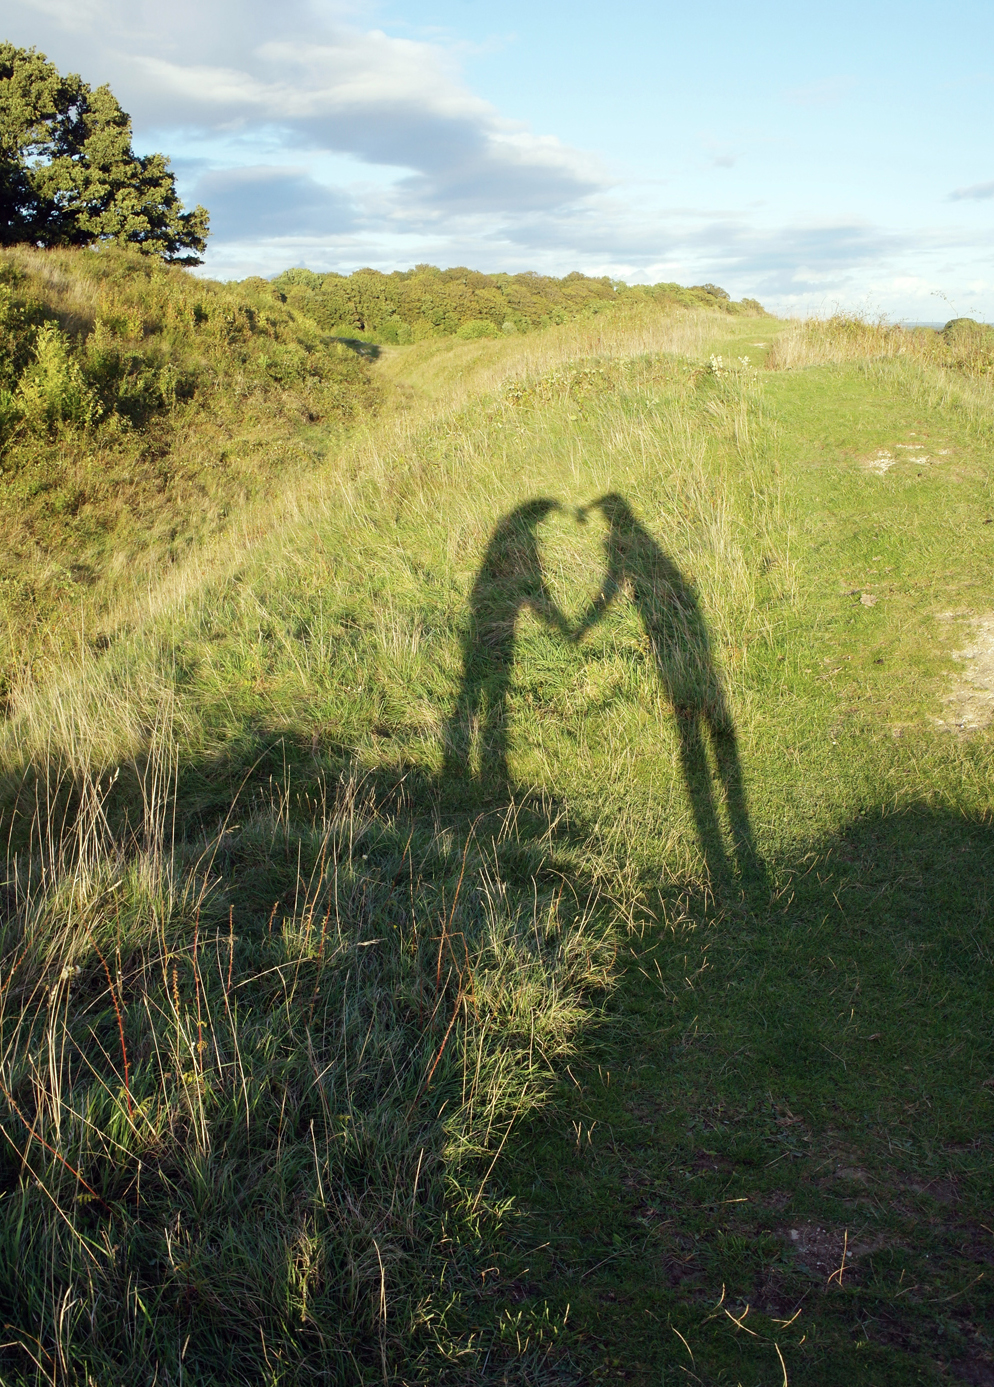 Heart made with shadows on an evening walk in the sunshine. Autumn walk in the sunshine, Badbury Rings, Dorset.